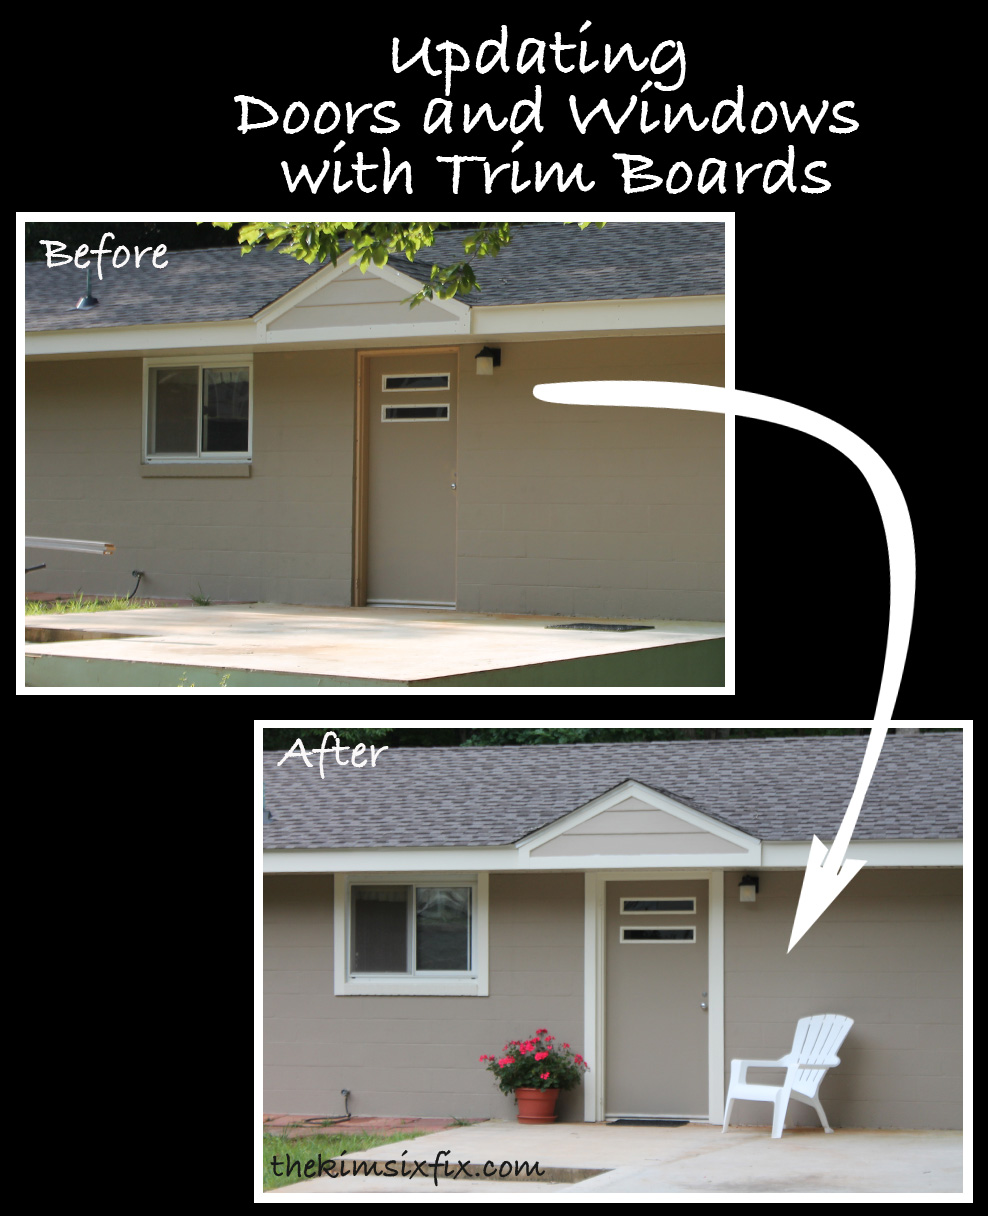 How to use trim to update exterior doors and windows the for Exterior doors and windows